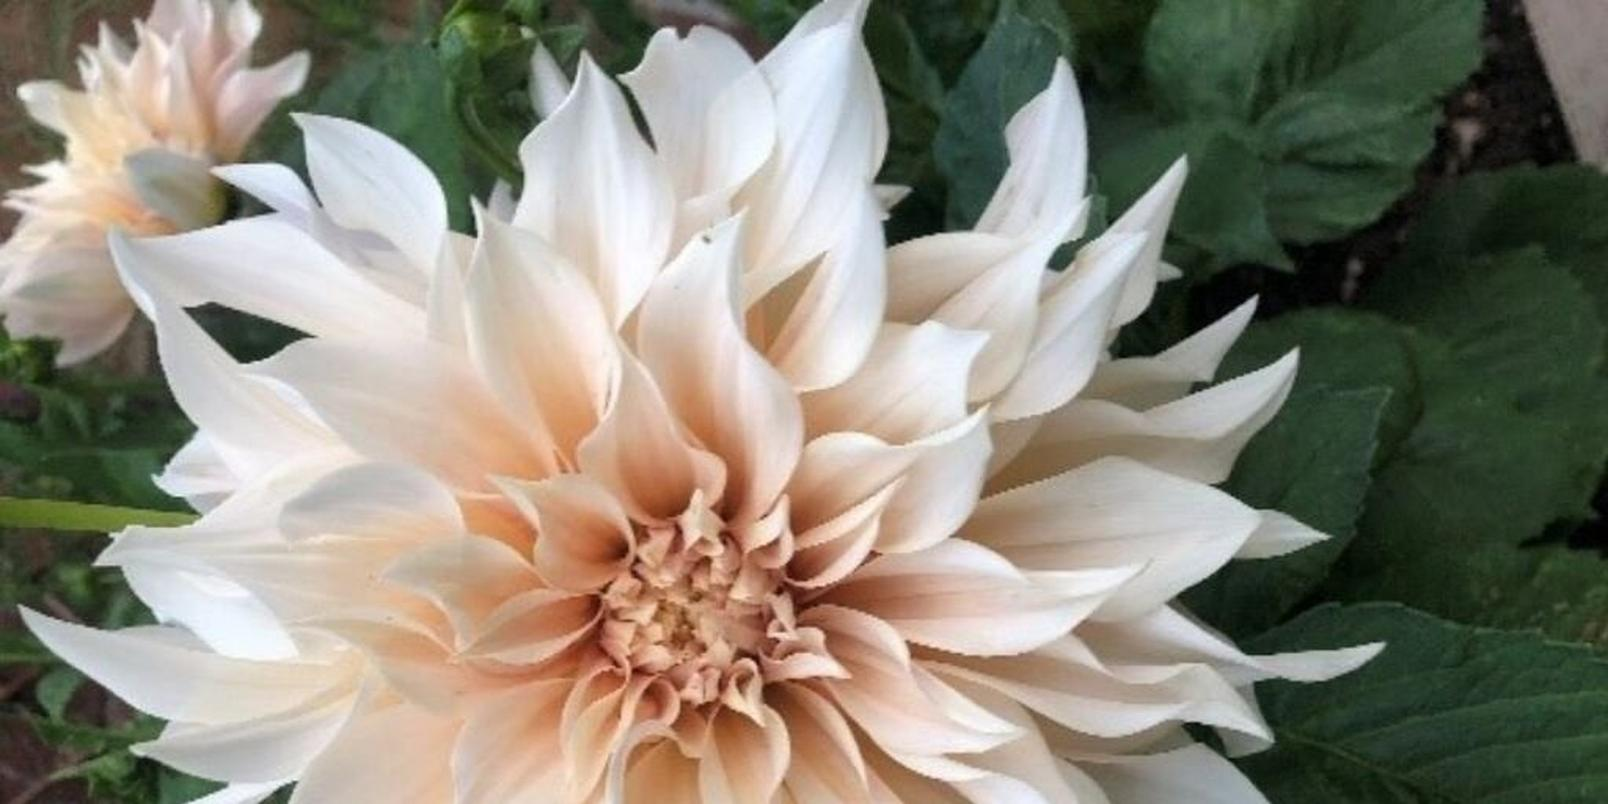 mindfloral-gardening-therapy-kirsty-ward-5